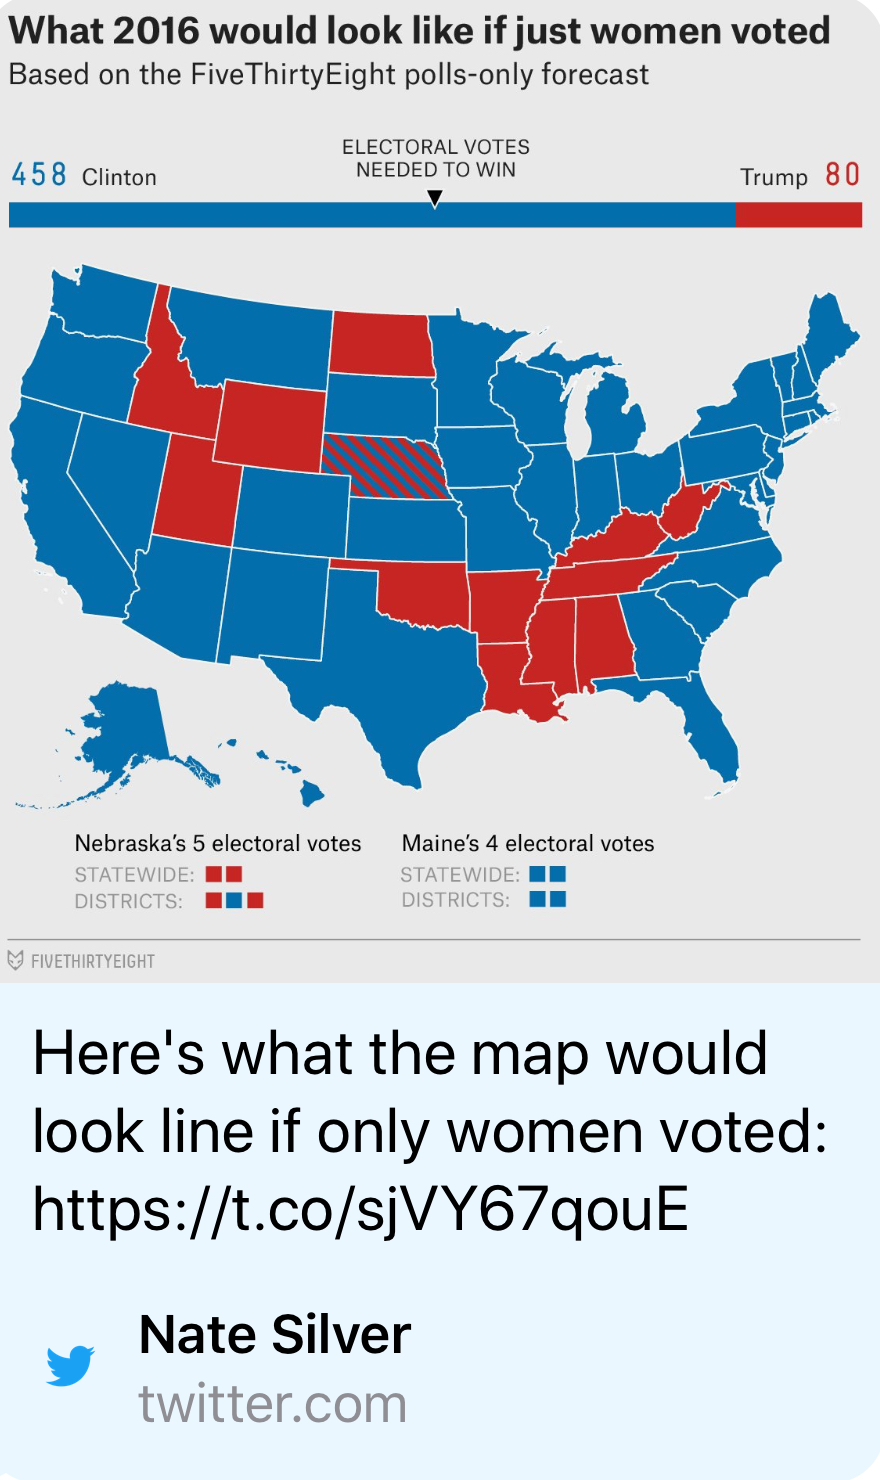 ann coulter has said it would be a much better country if women did not vote that is simply a fact in fact in every presidential election since 1950